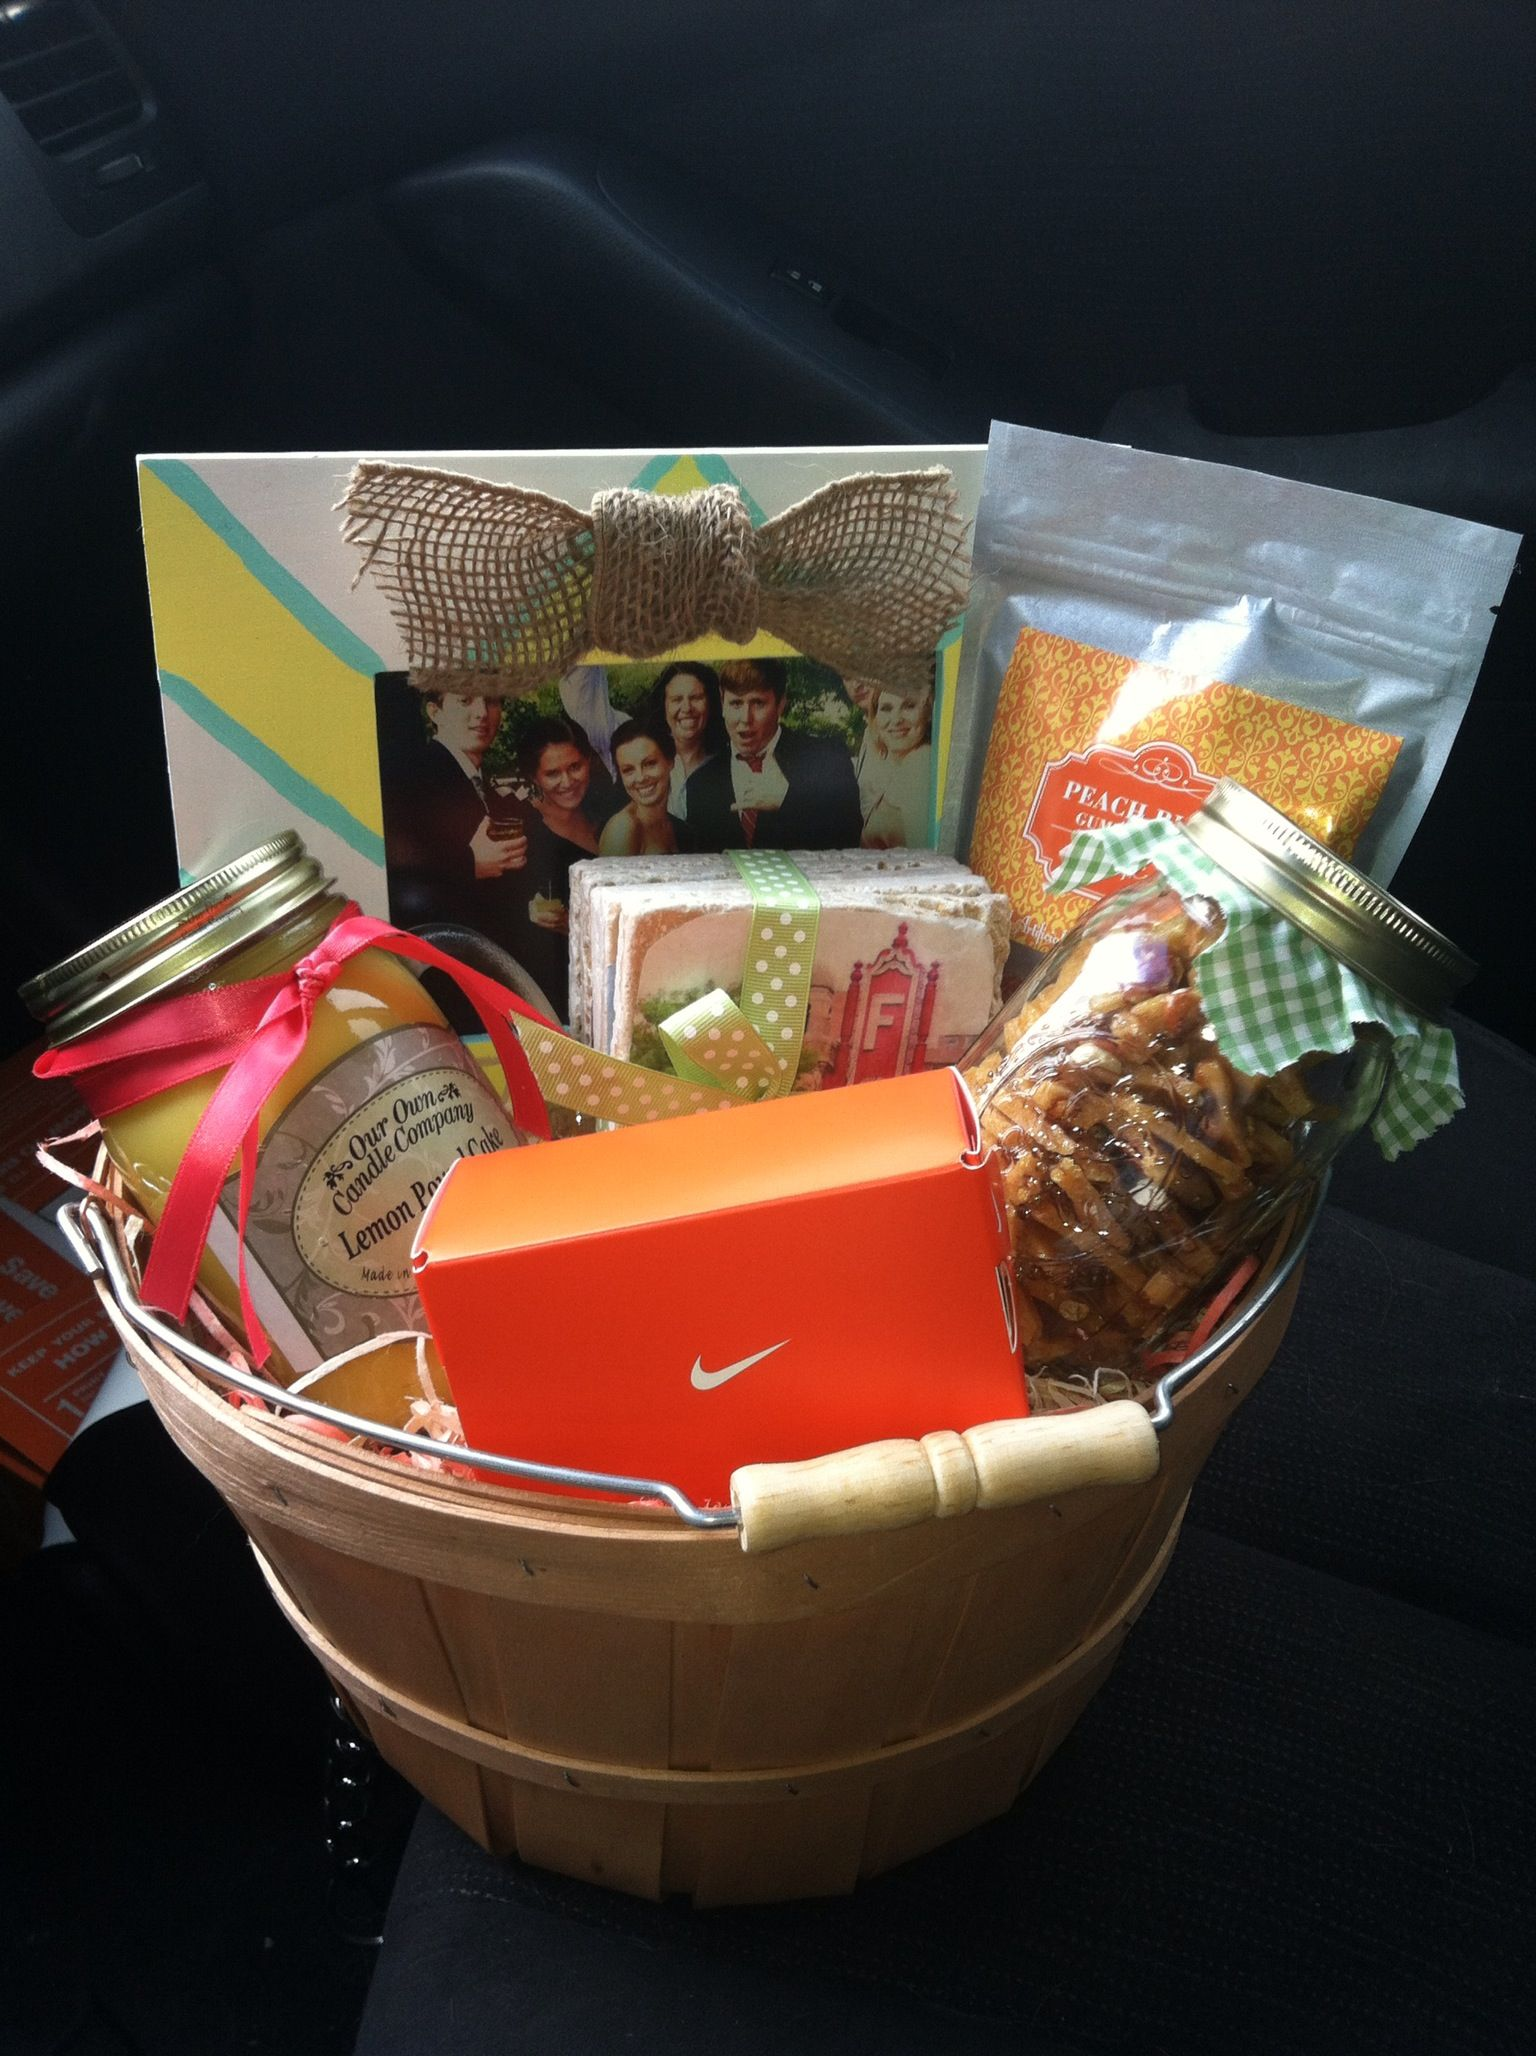 Georgia Theme Gift Basket I Made This For A Friend Who Never Gets To